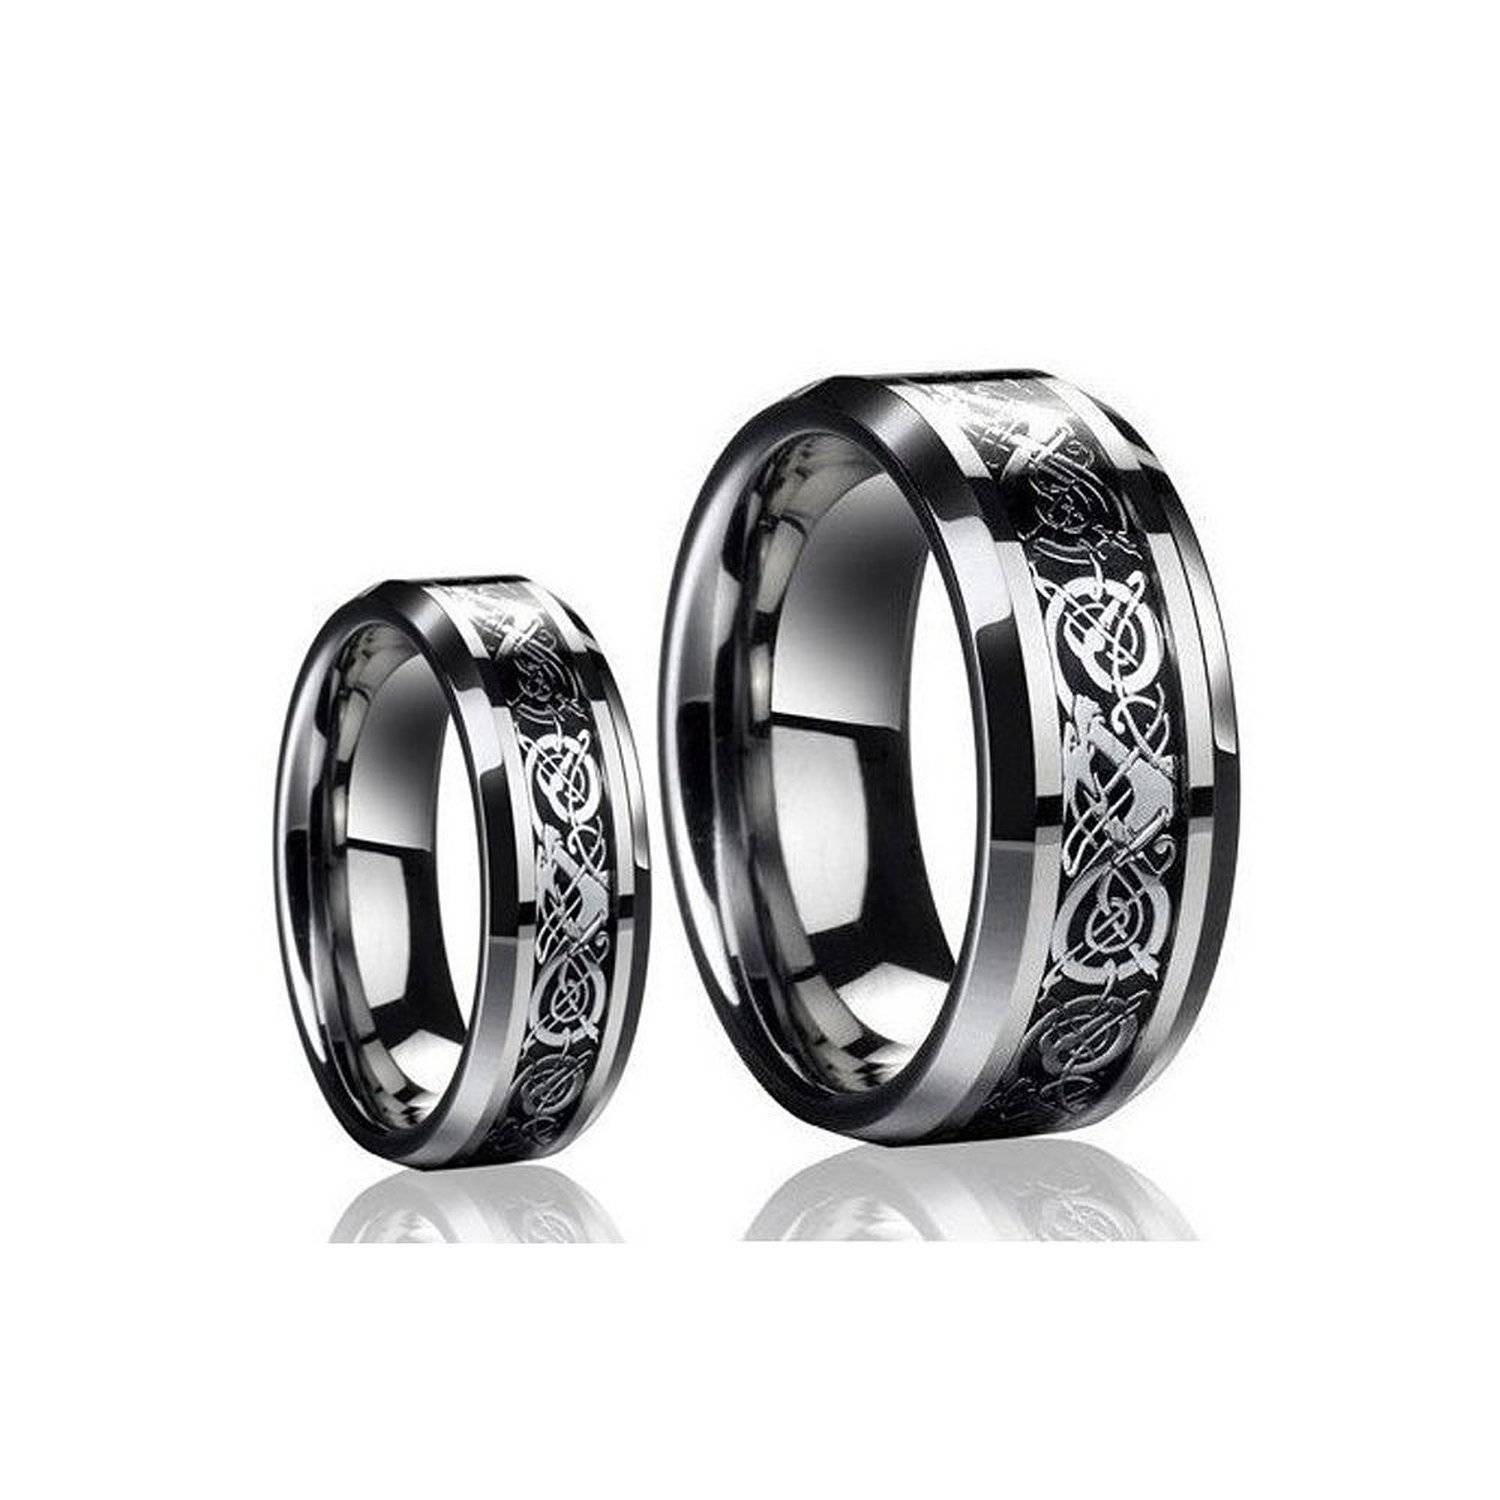 51 Black Wedding Band Sets, Black Stainless Steel Titanium Wedding Throughout Tungsten Titanium Wedding Bands (View 9 of 15)